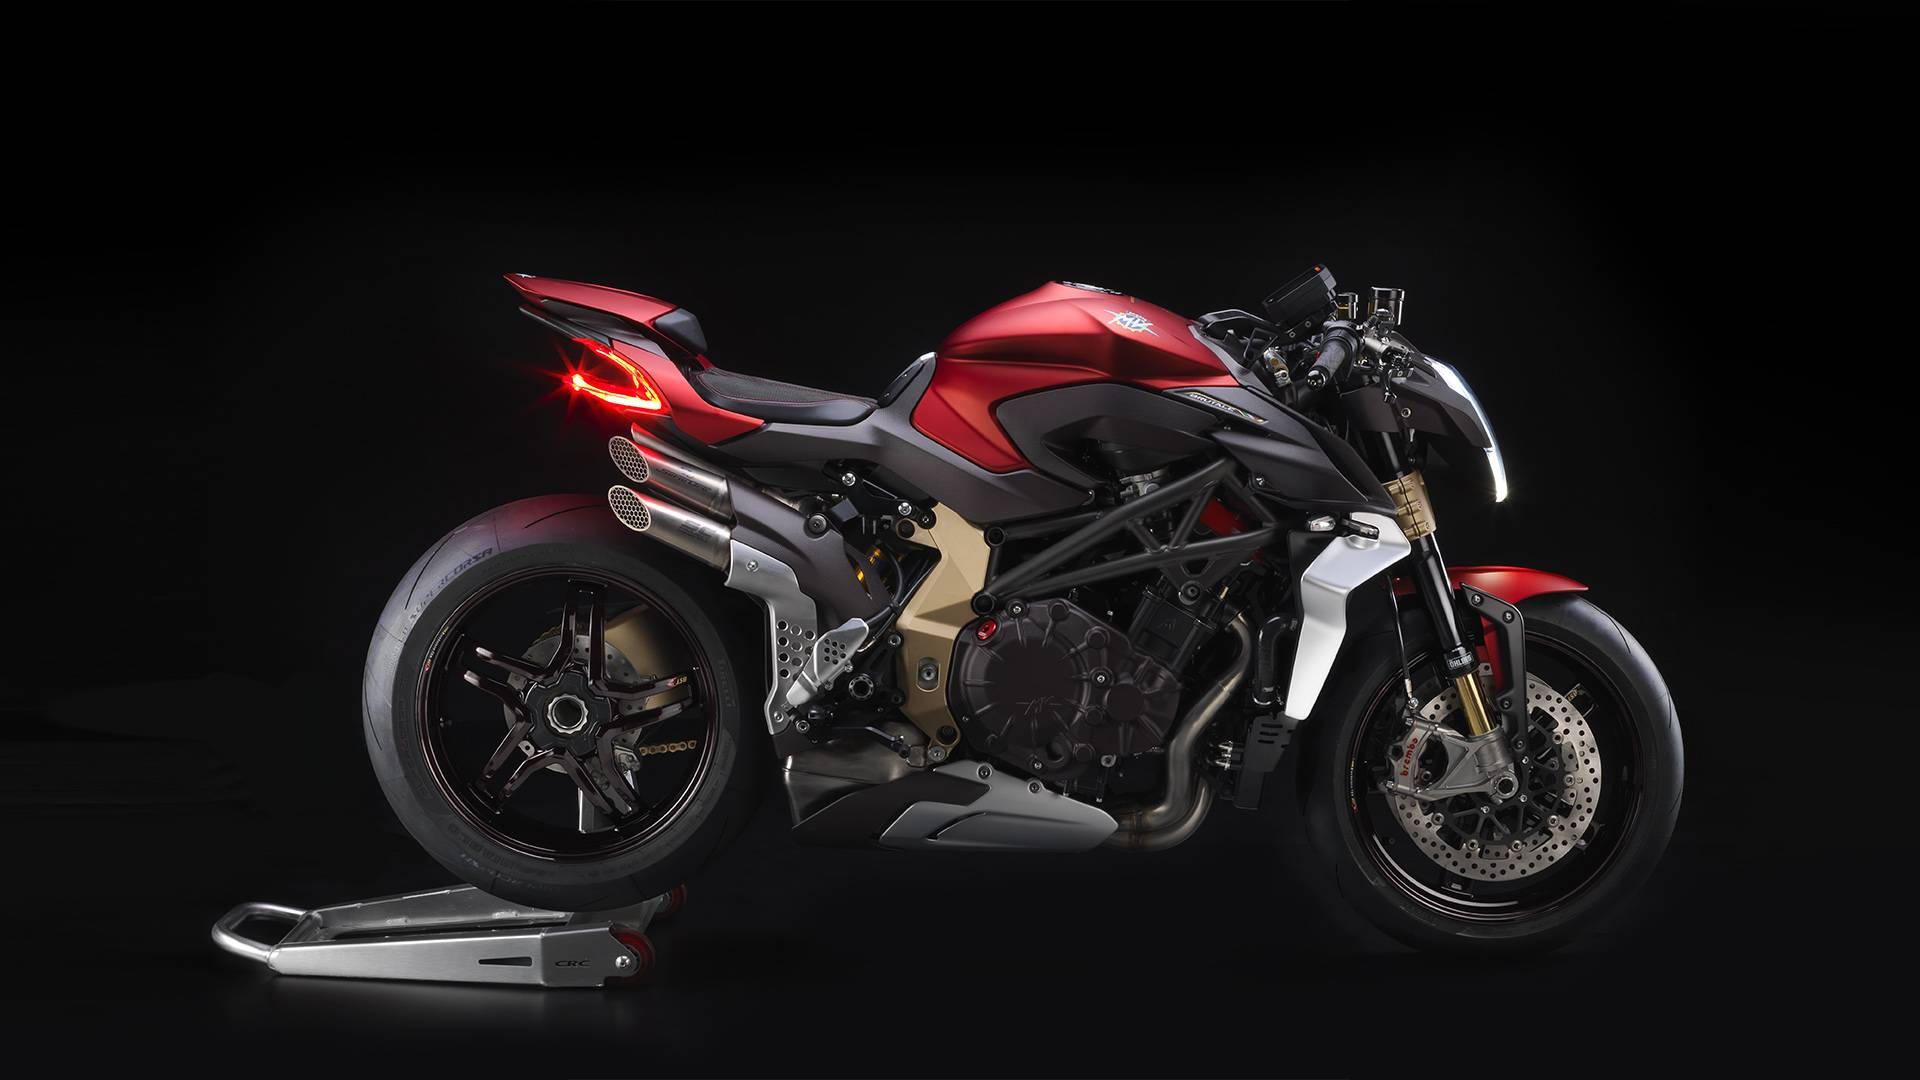 MV Agusta and Loncin to produce new range of bikes - iMotorbike News